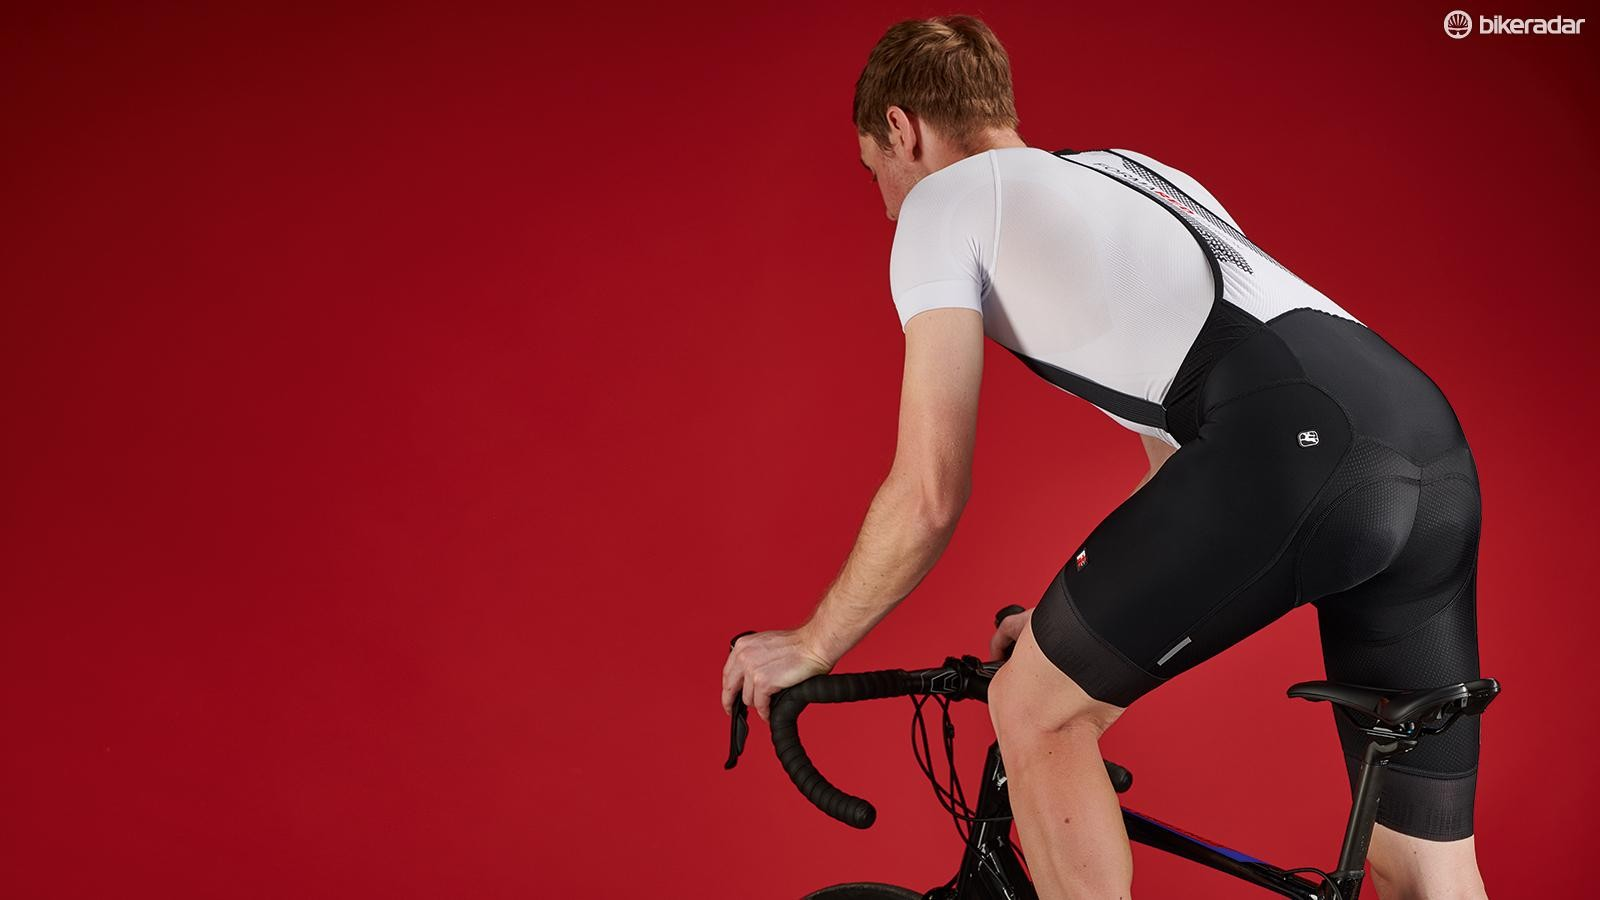 Giordana provides some of the best value high-performance bibs